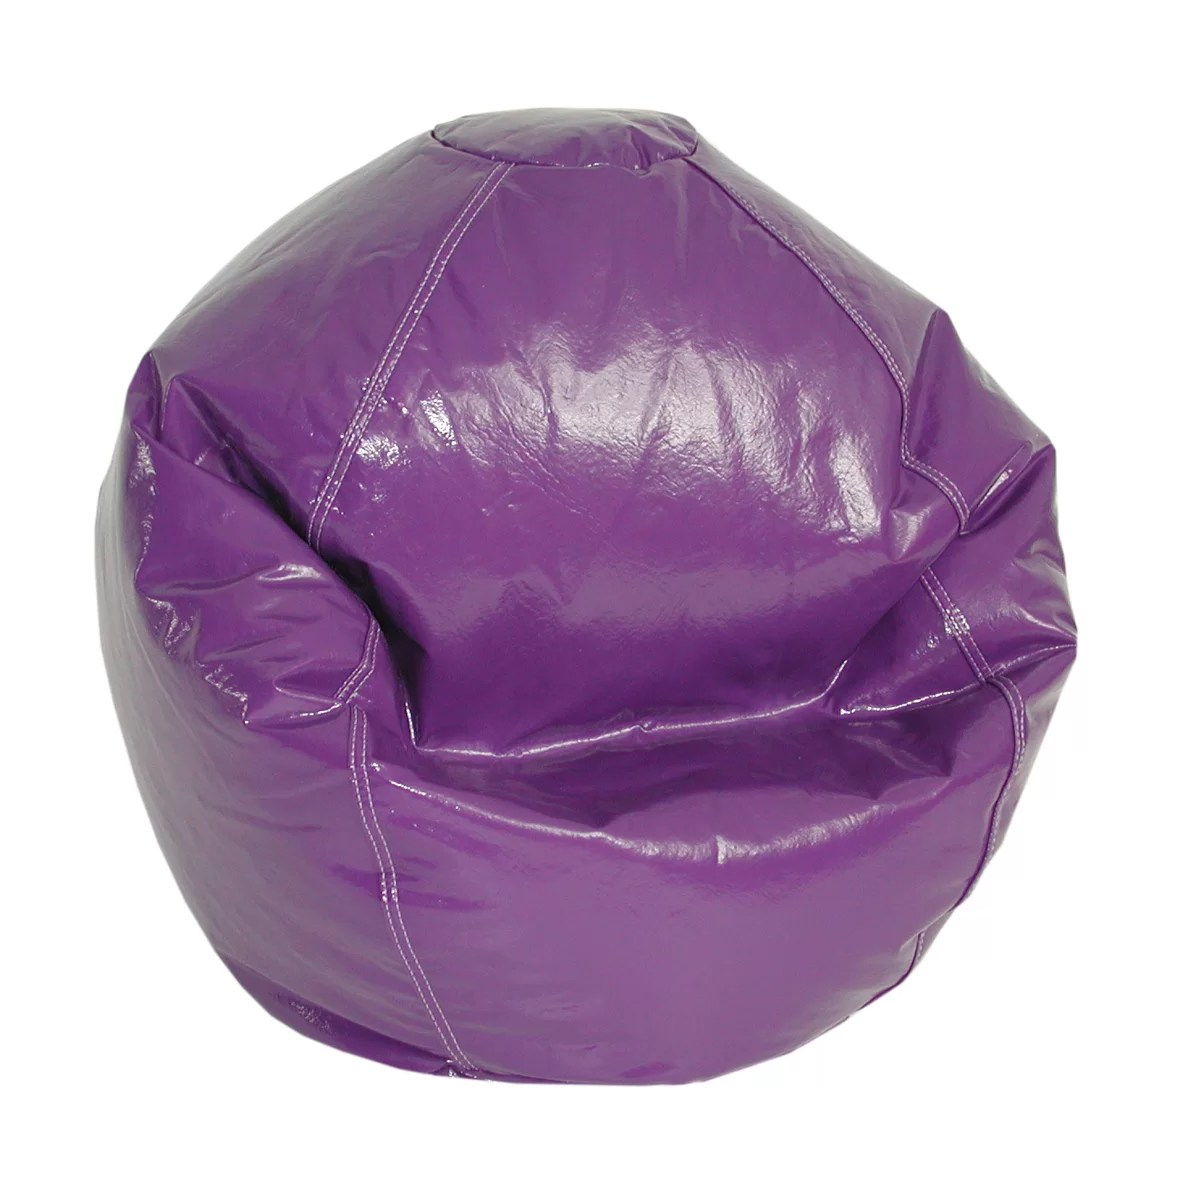 Beanbag Chair Elite Products Wetlook Bean Bag Chair And Reviews Wayfair